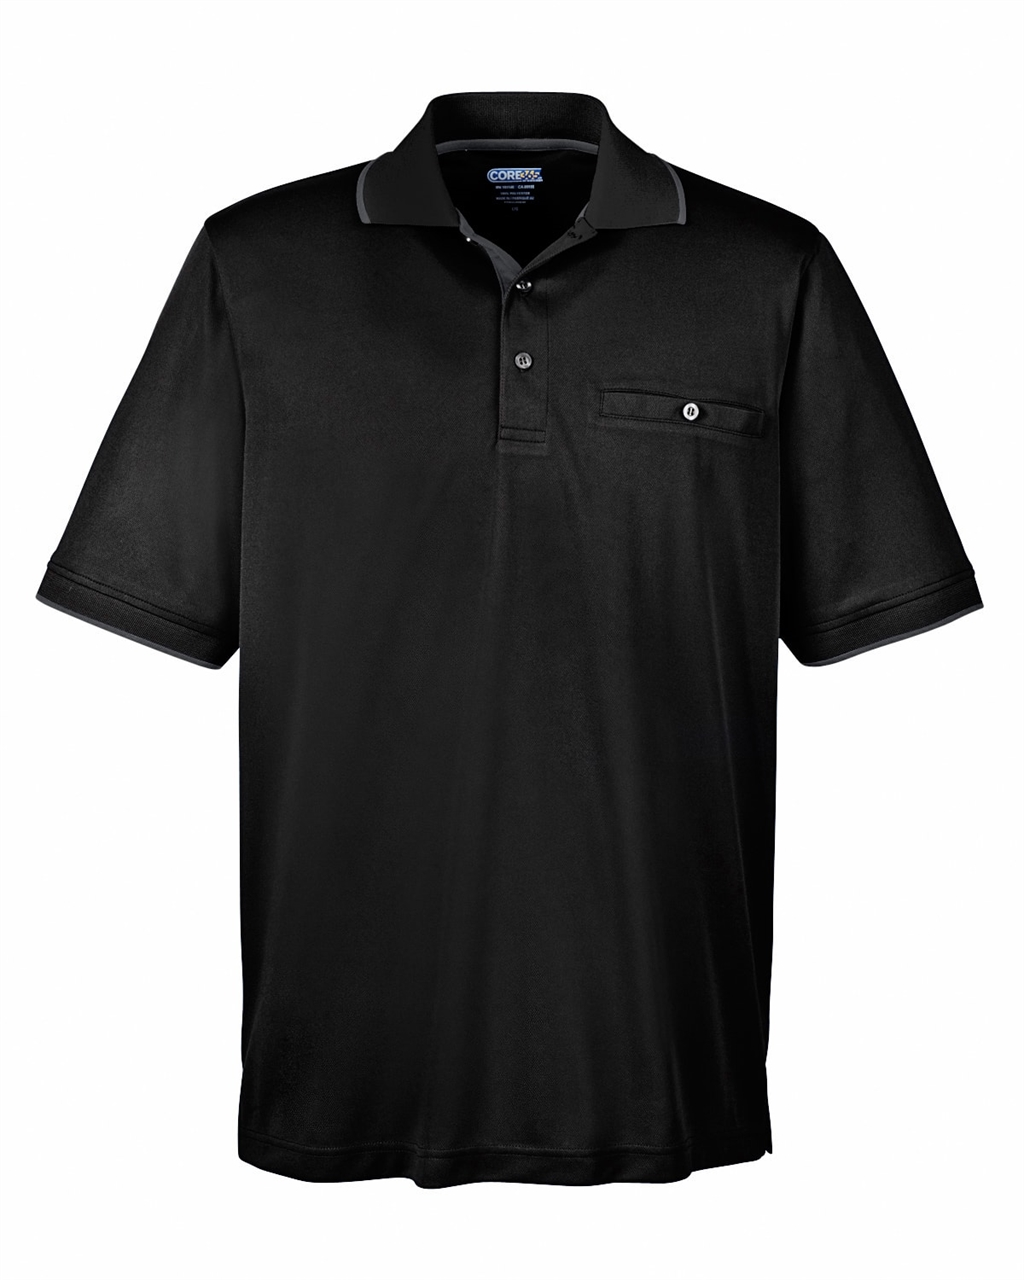 Picture of Core365 Men's Motive Performance Pique Polo With Collar